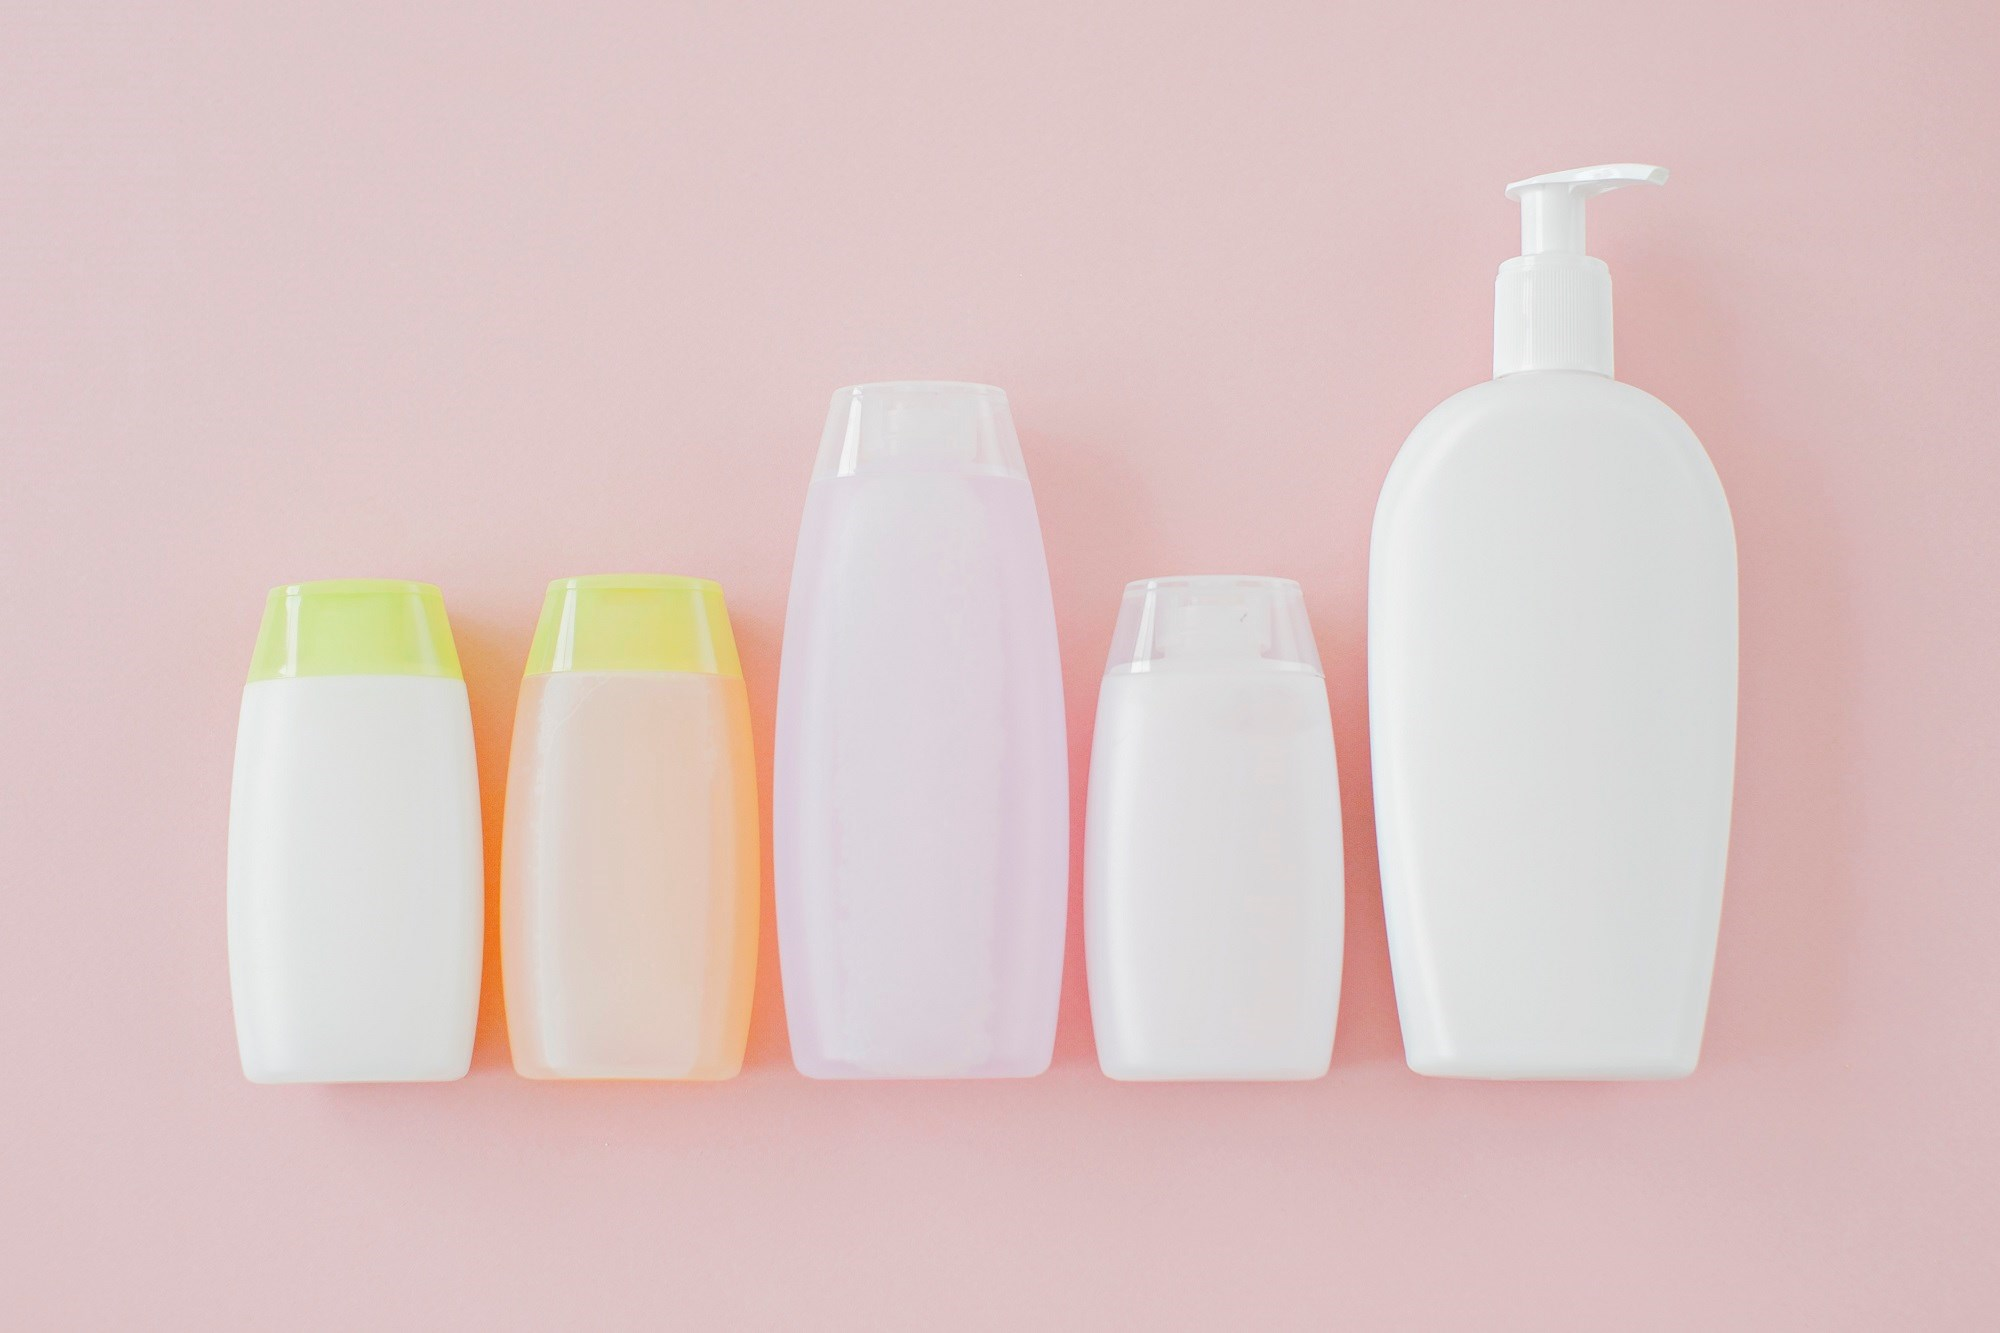 Endocrine-Disrupting Chemicals in Personal Care Products Linked to Early Puberty